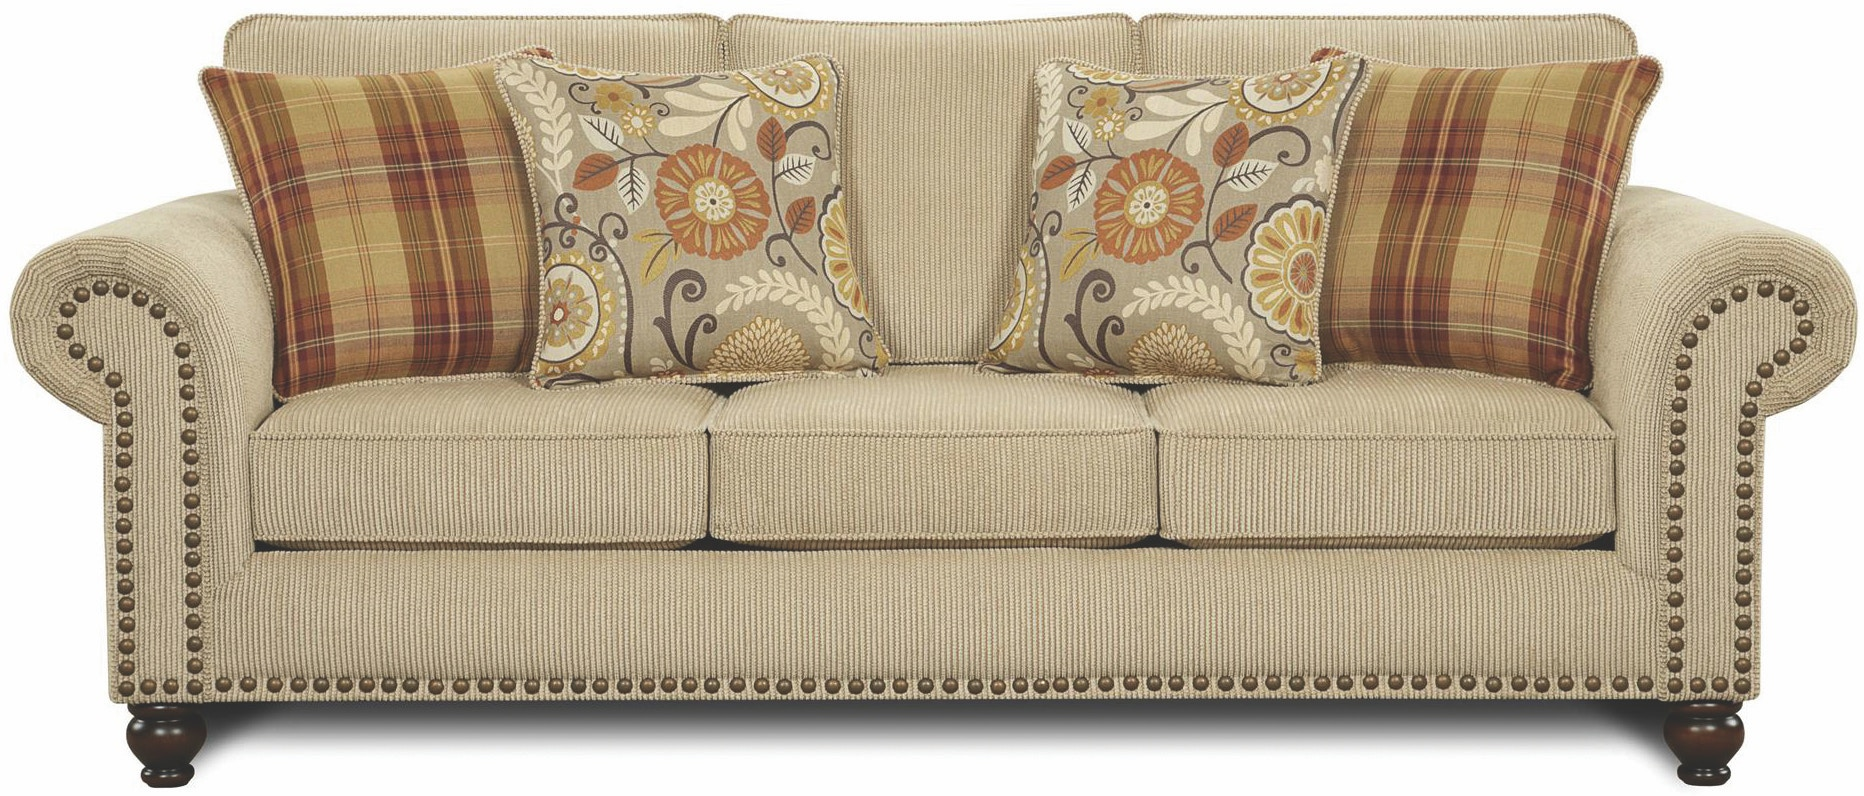 Fusion Living Room Out West Linen Sofa Furniture